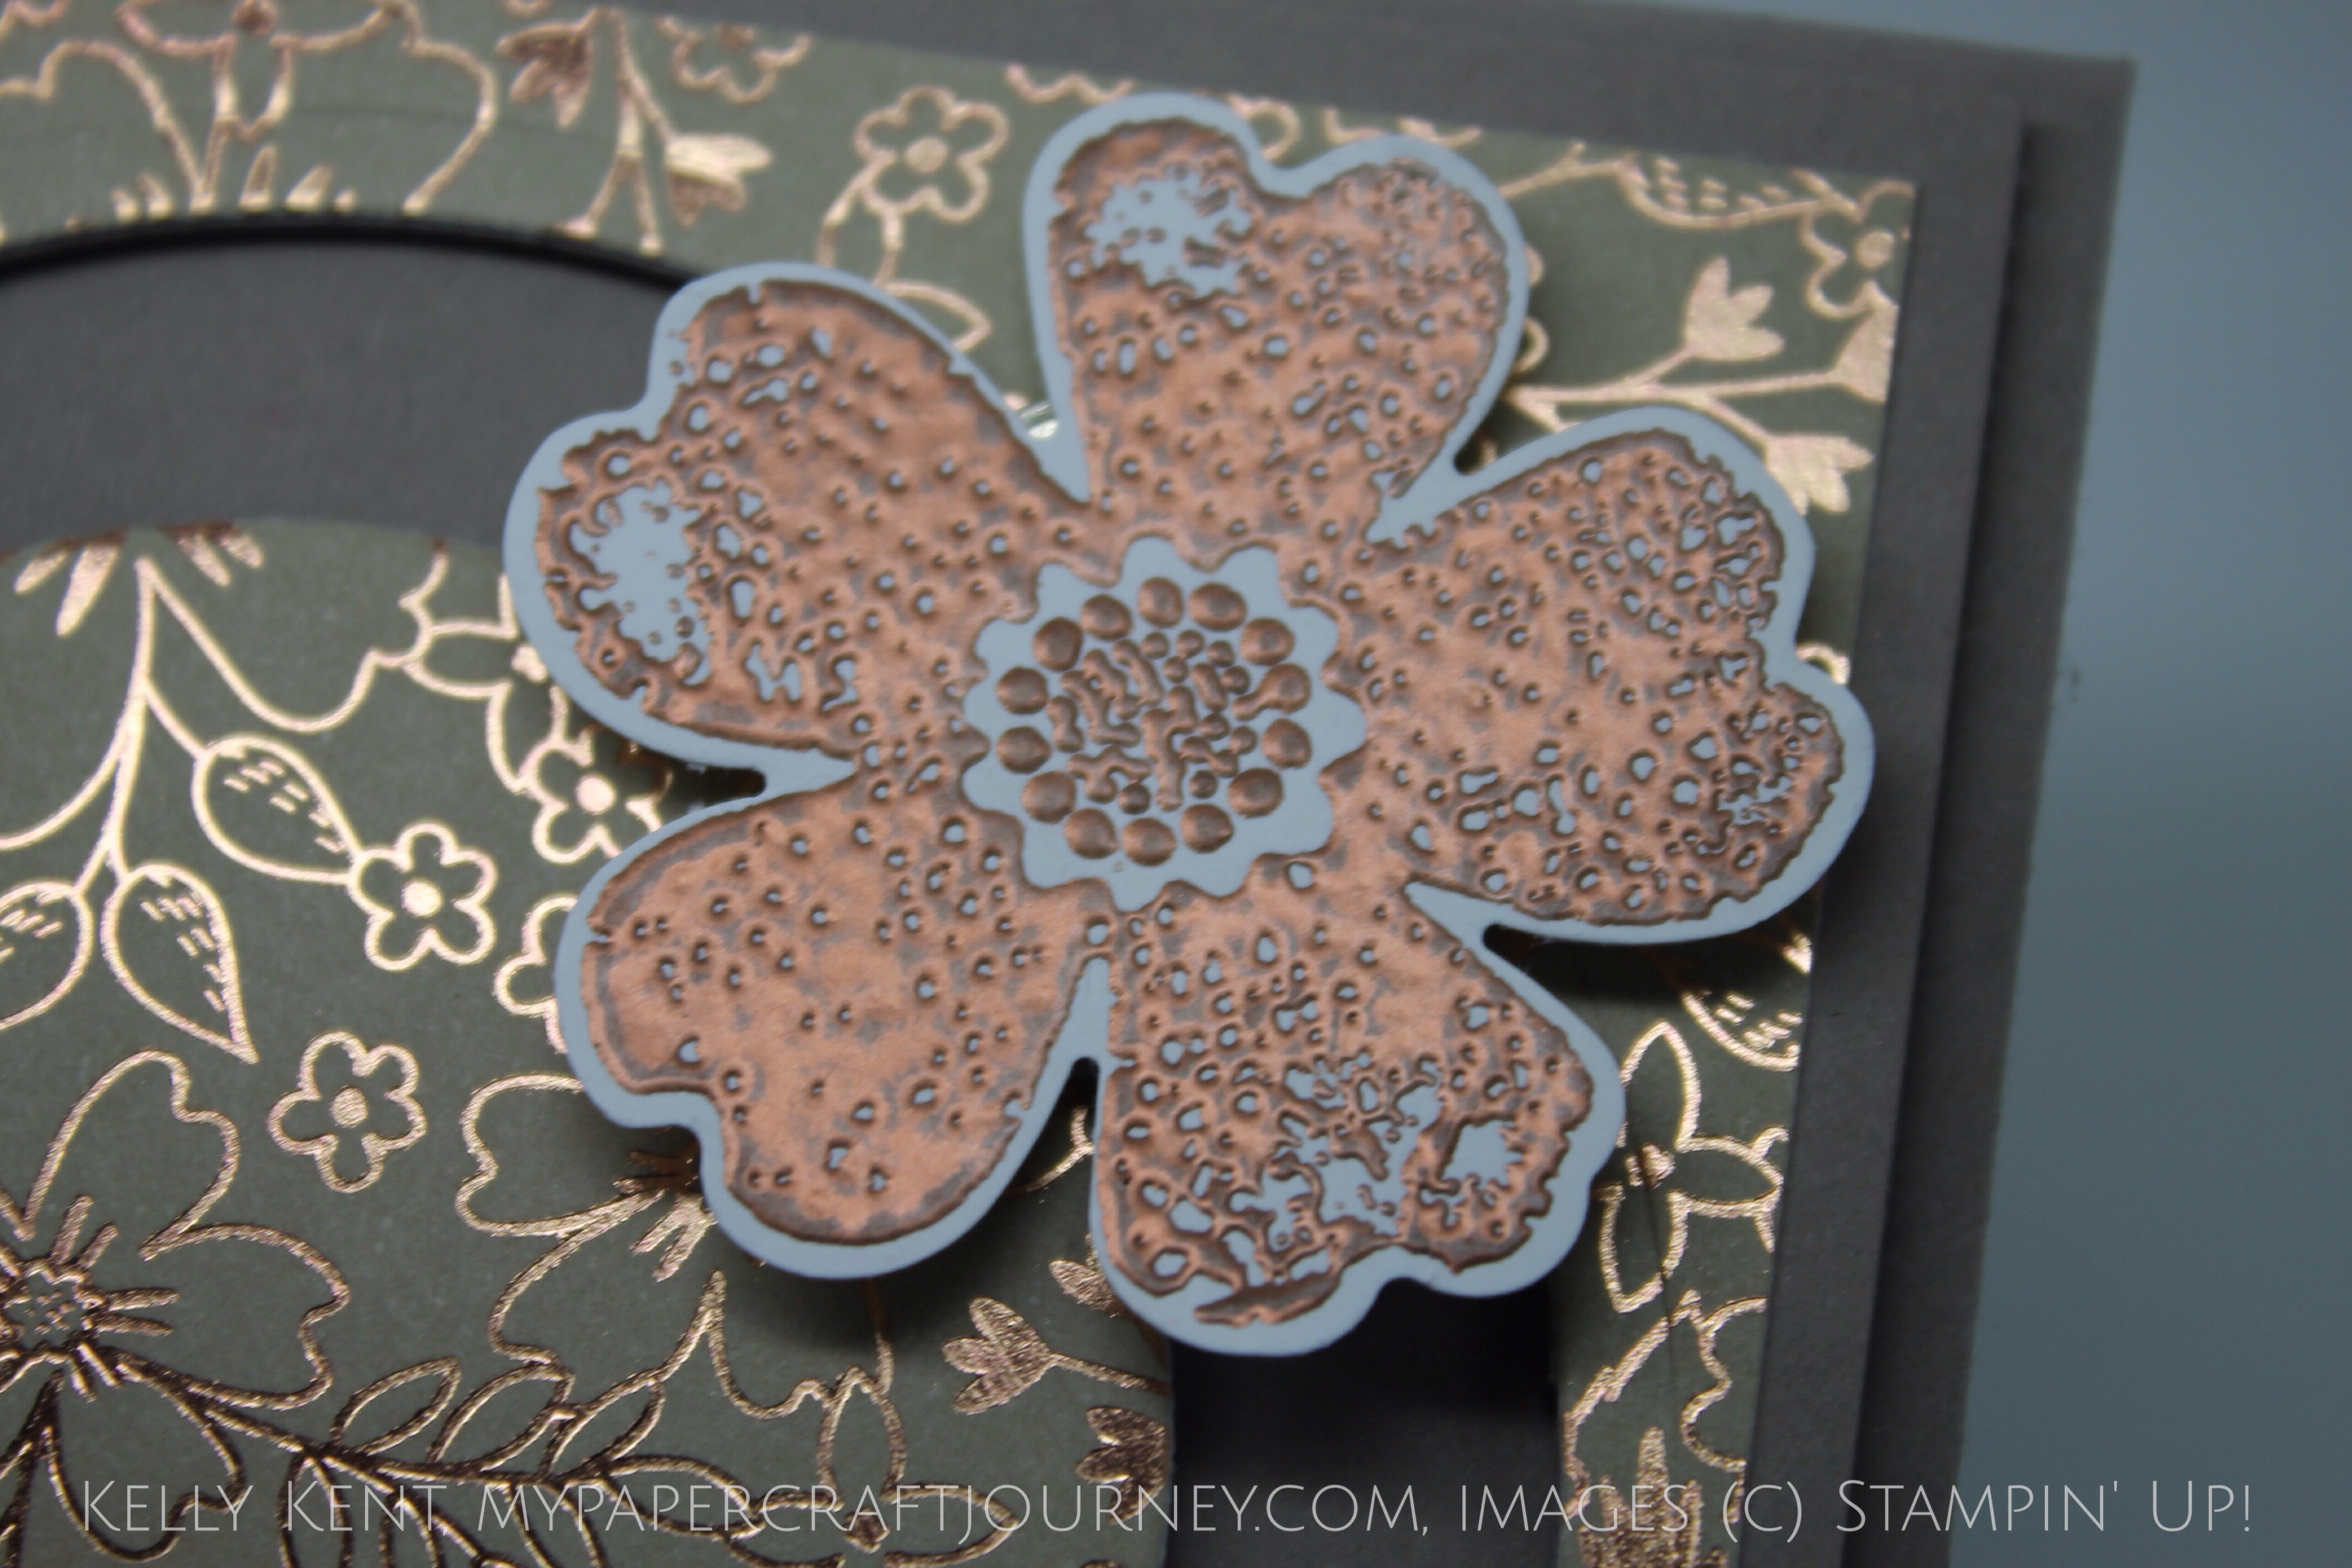 Stamp Review Crew - Flower Shop Spinner Card. Affectionately Yours DSP & Cooper Embossing Powder. Kelly Kent - mypapercraftjourney.com.